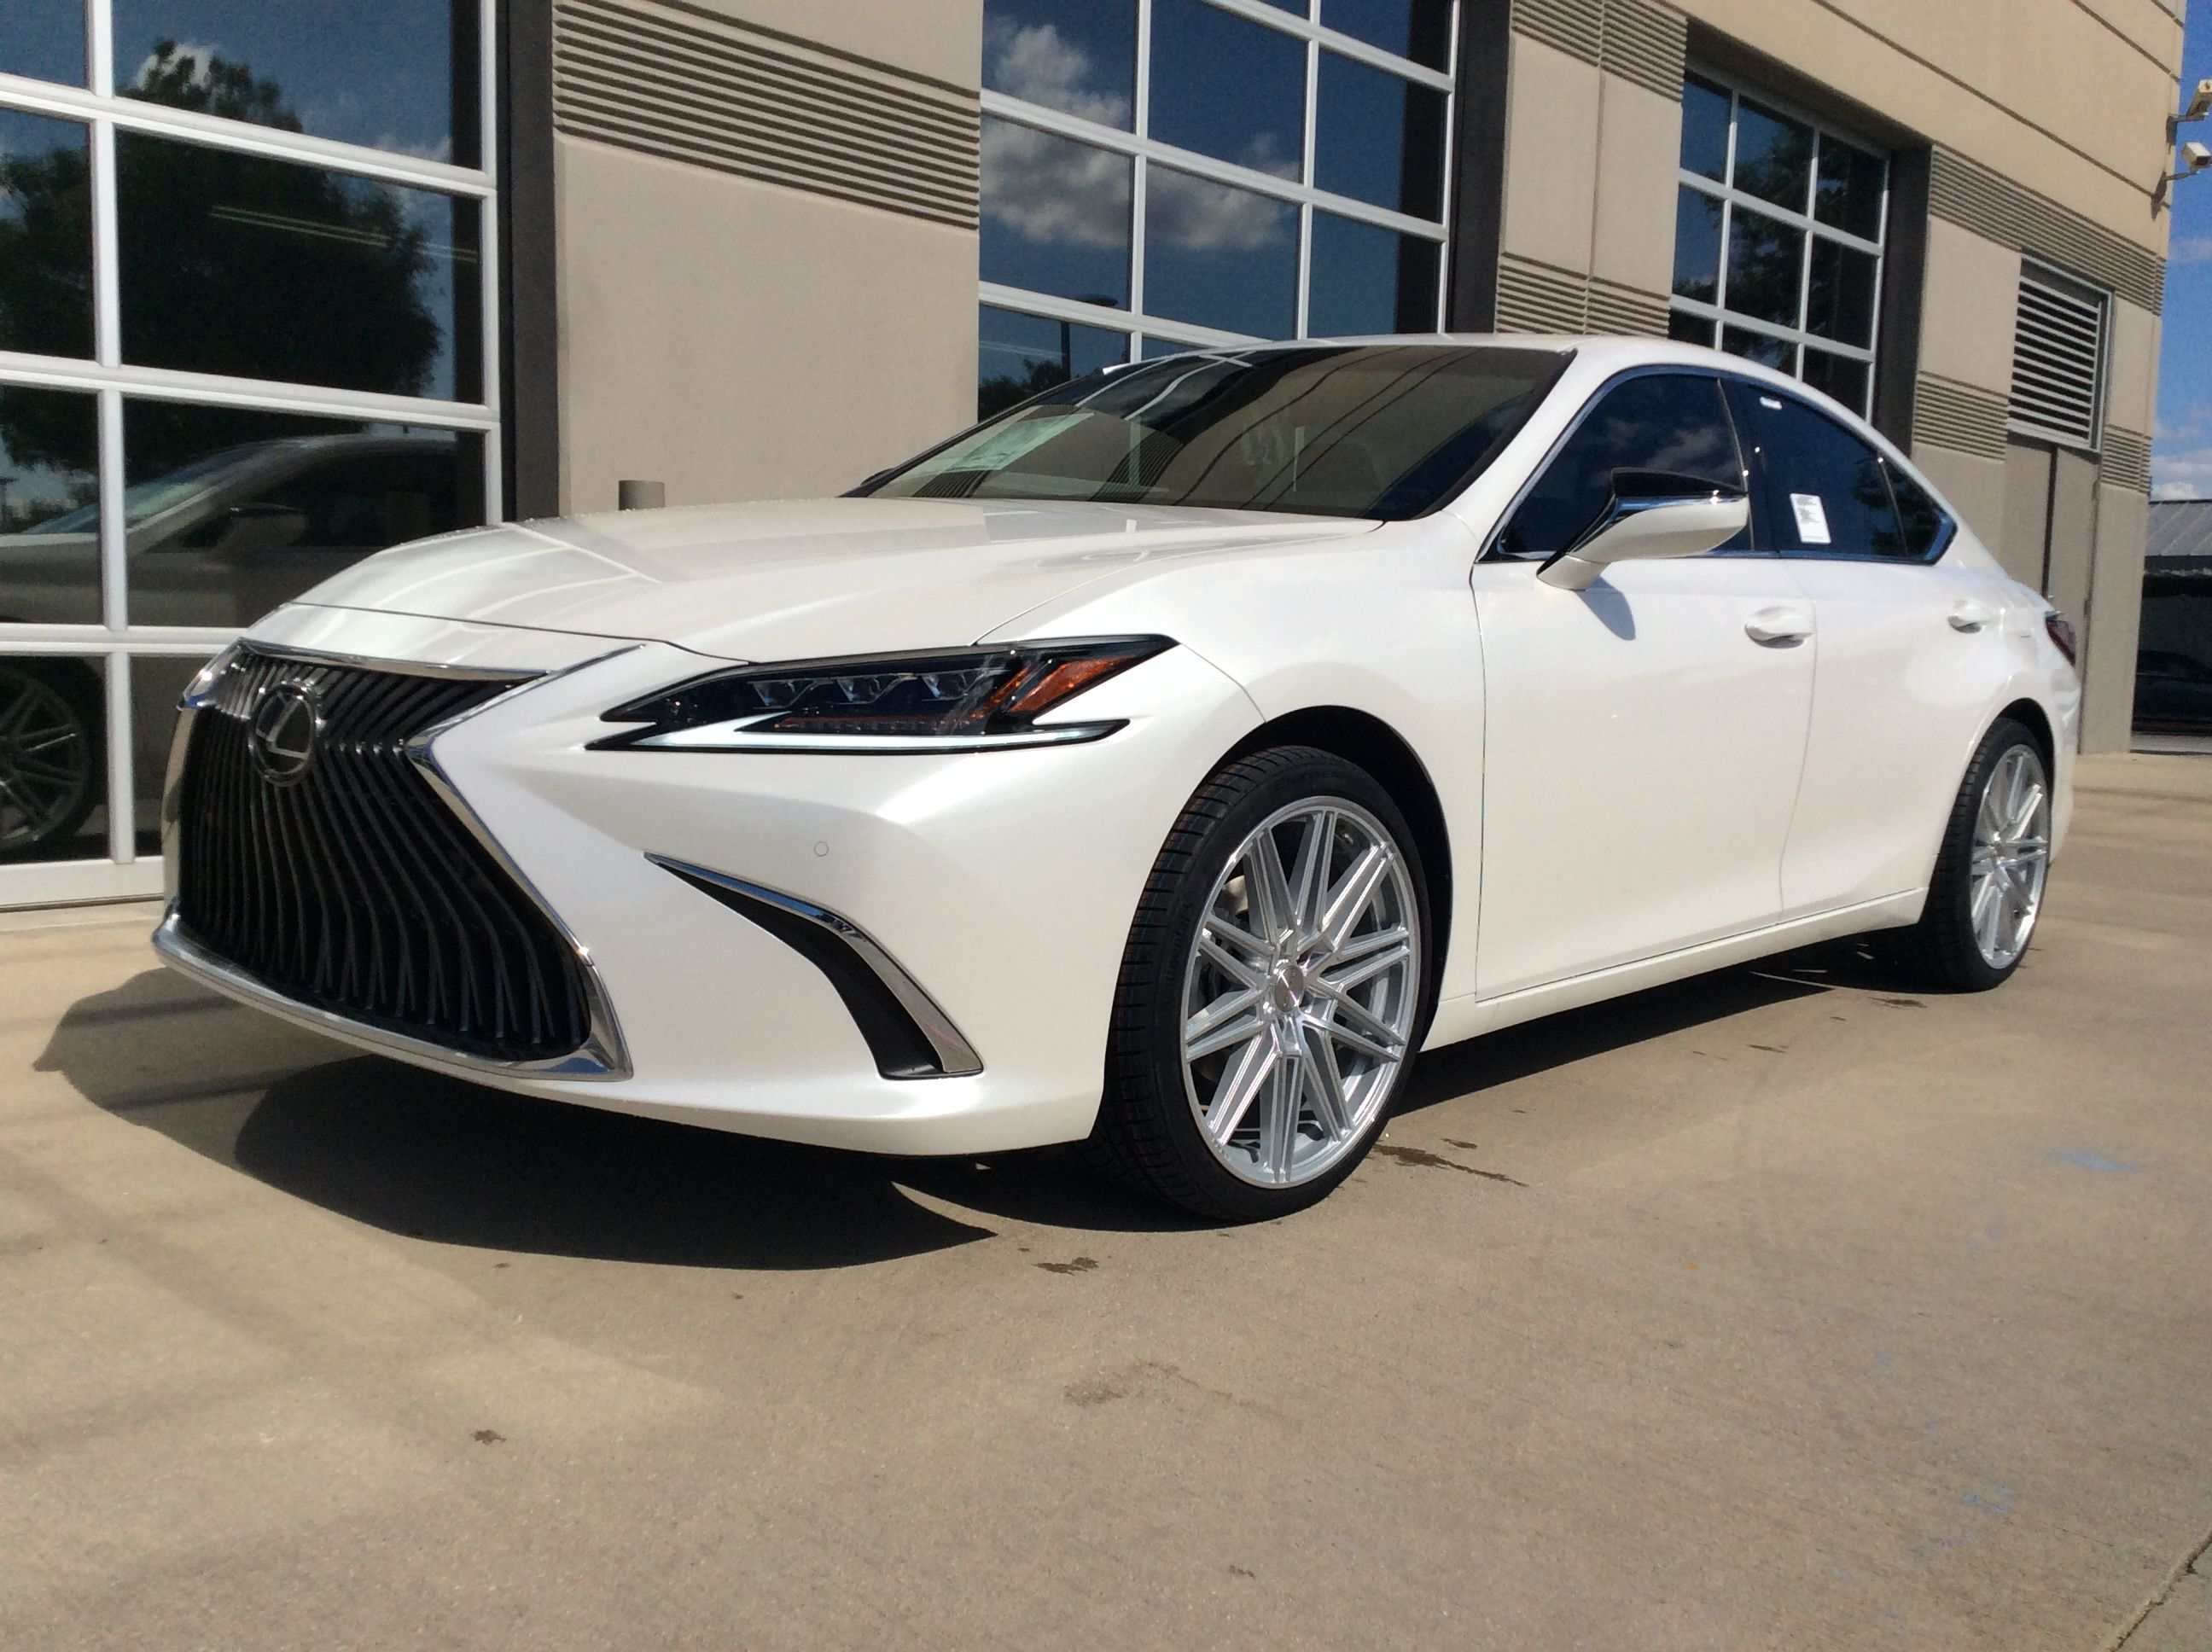 2019 Lexus Es350 With The New Vossen Cv10 Silver Polished Wheels And Continental Tires Lexus Es350 Lexuses350 Vossen Wheels C Lexus Es Lexus Lexus Sedan